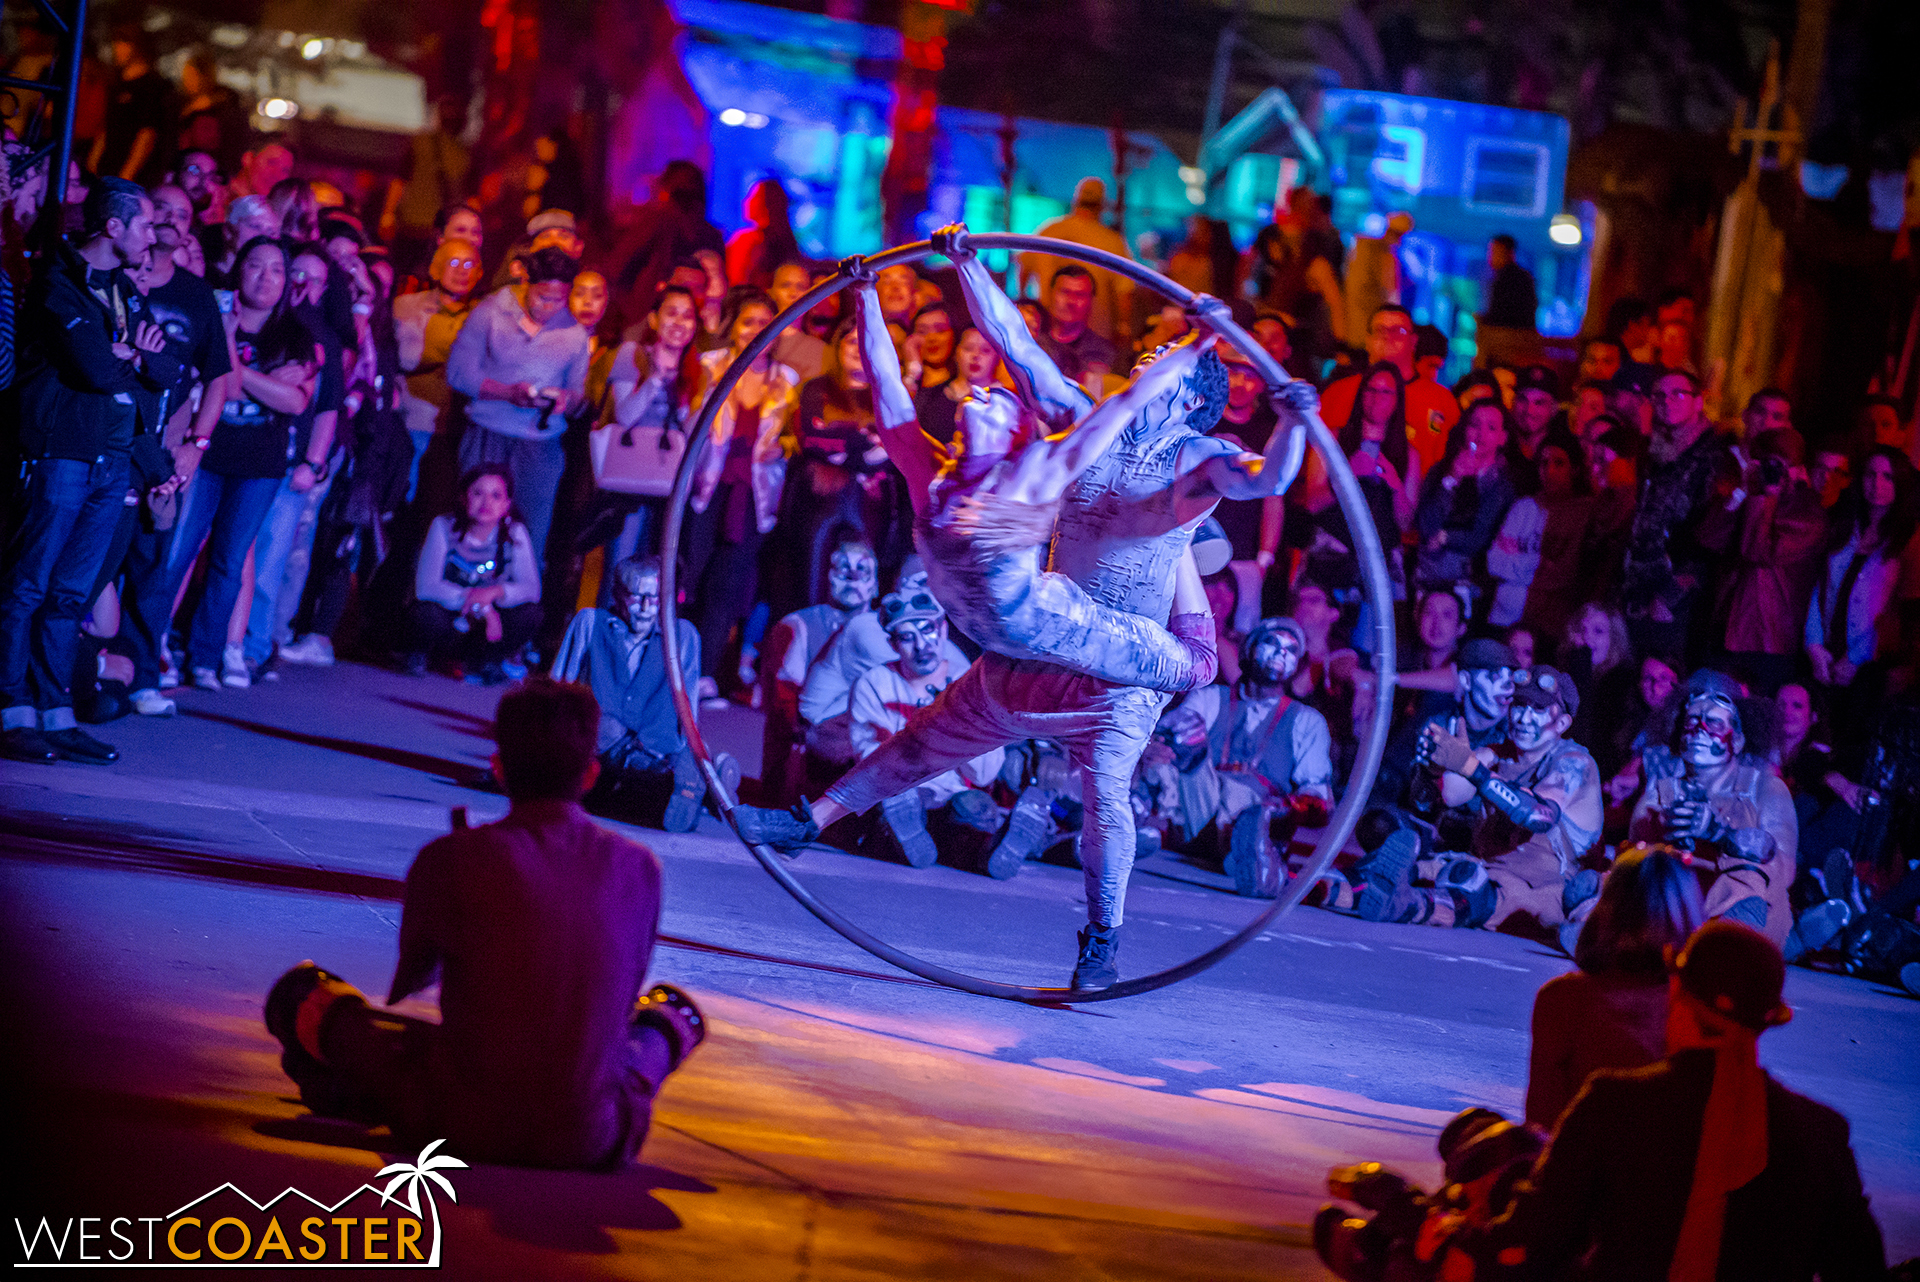 An impressive preshow featuring acrobats on the hoops provided a spectacle for both guests and sliders, who sat with attention.